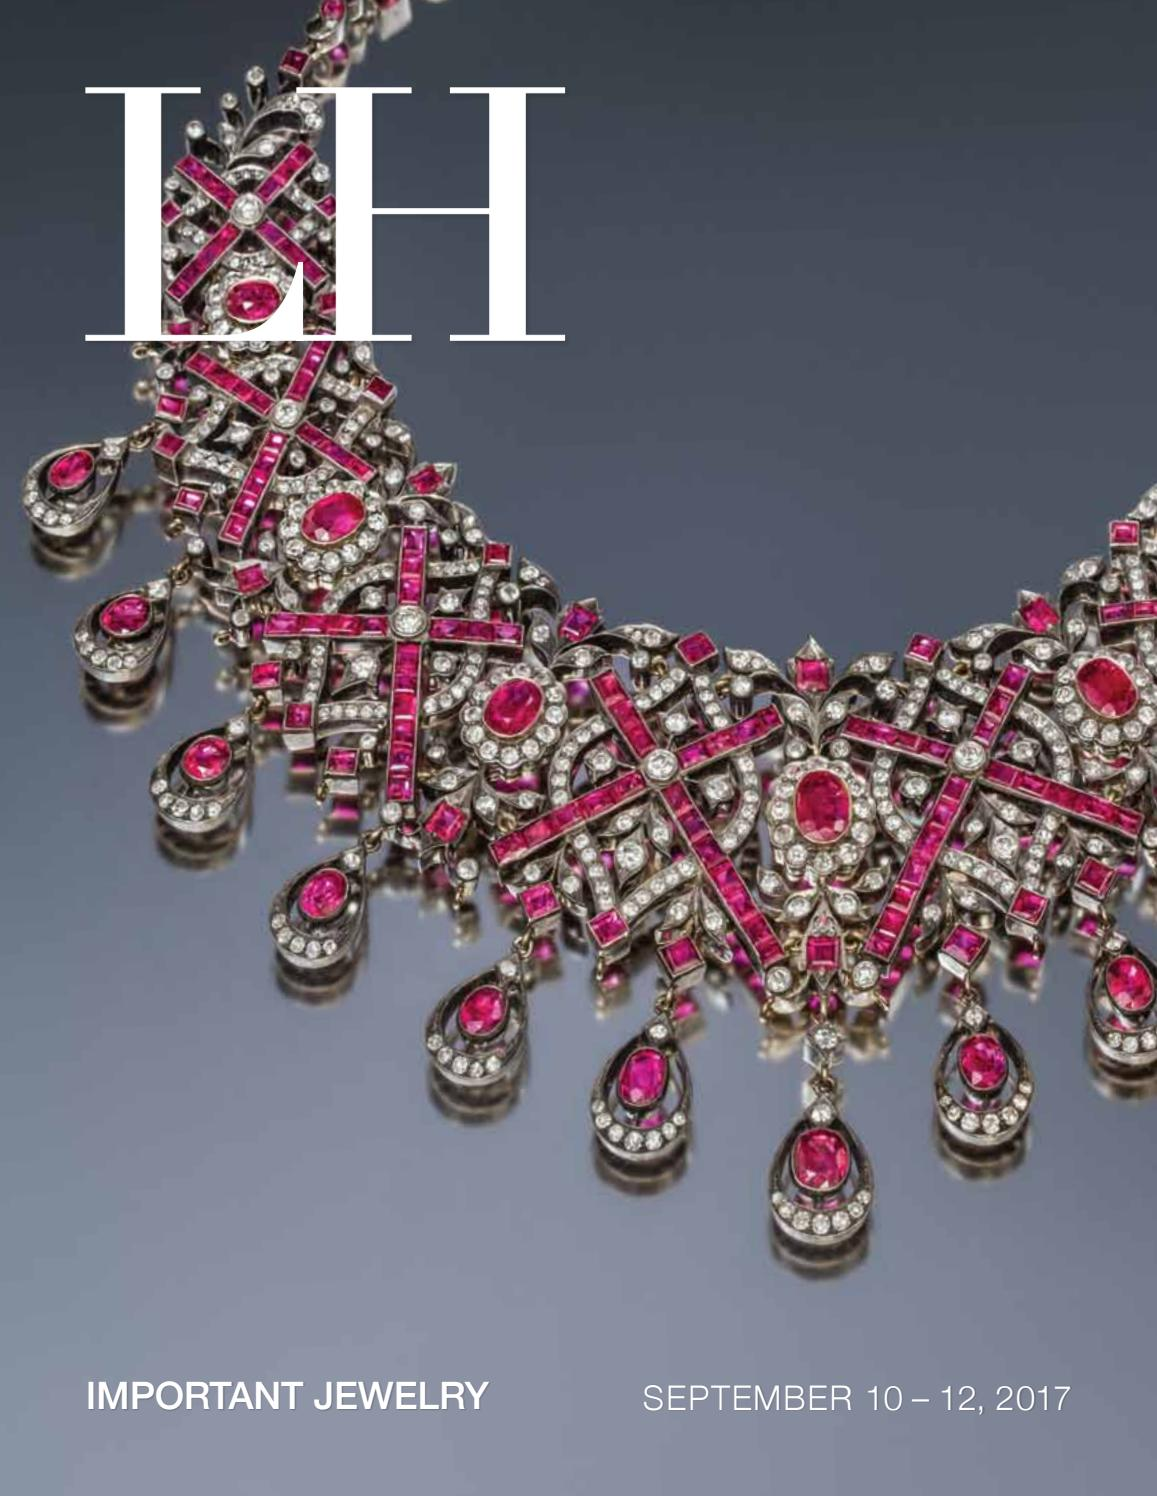 dac3e5093 Sale 523 | Important Jewelry by Hindman - issuu